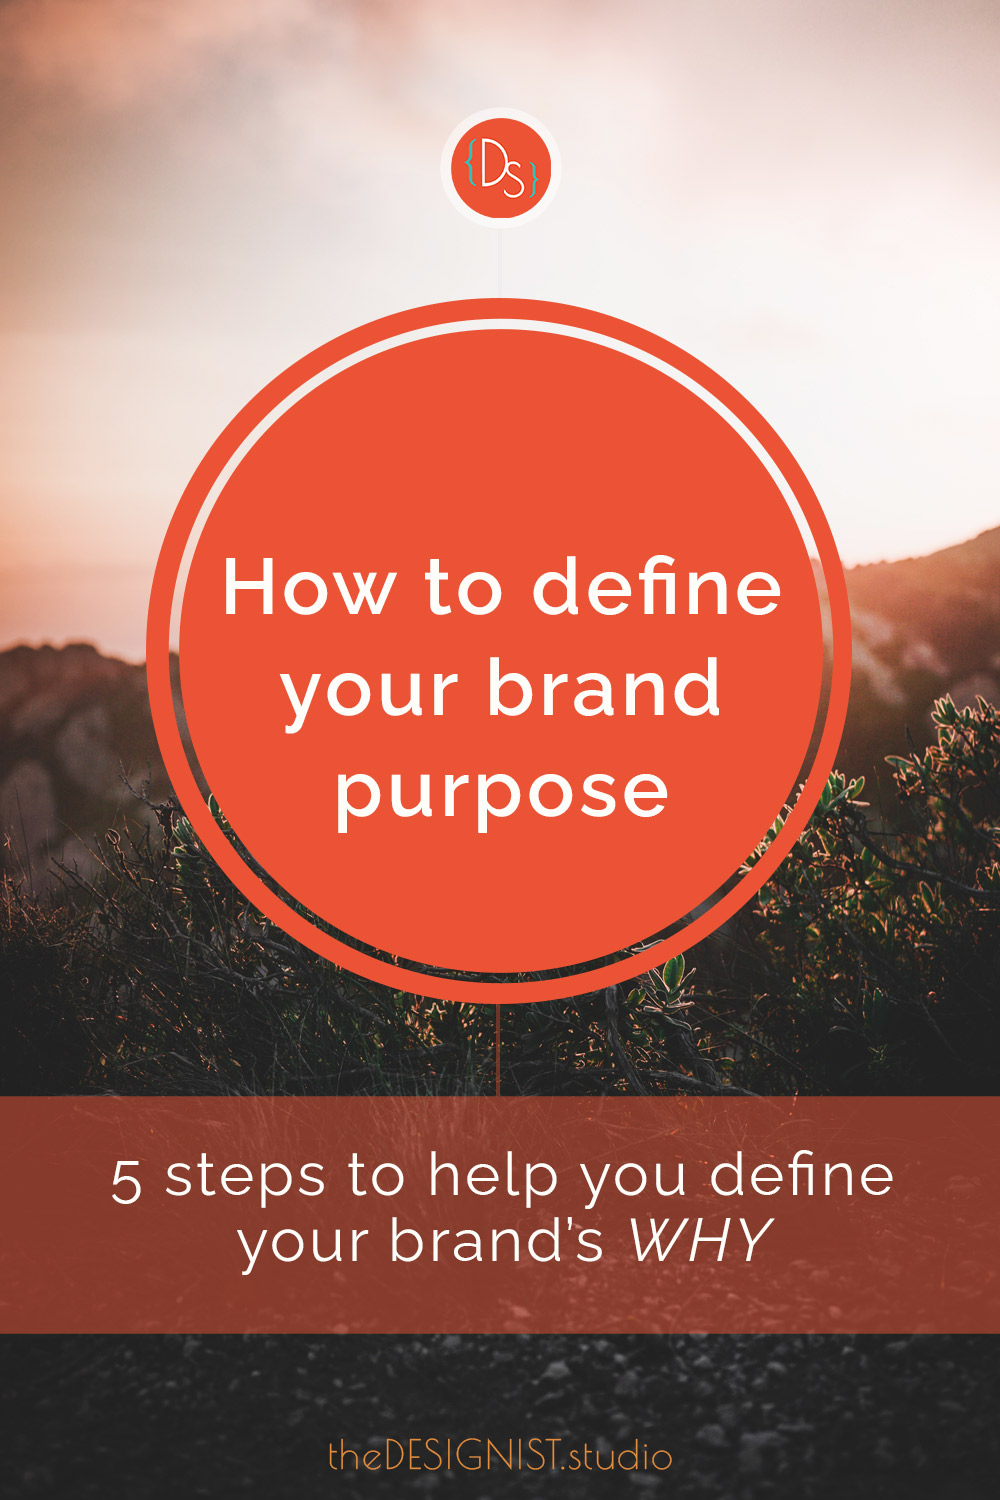 How to define your brand purpose